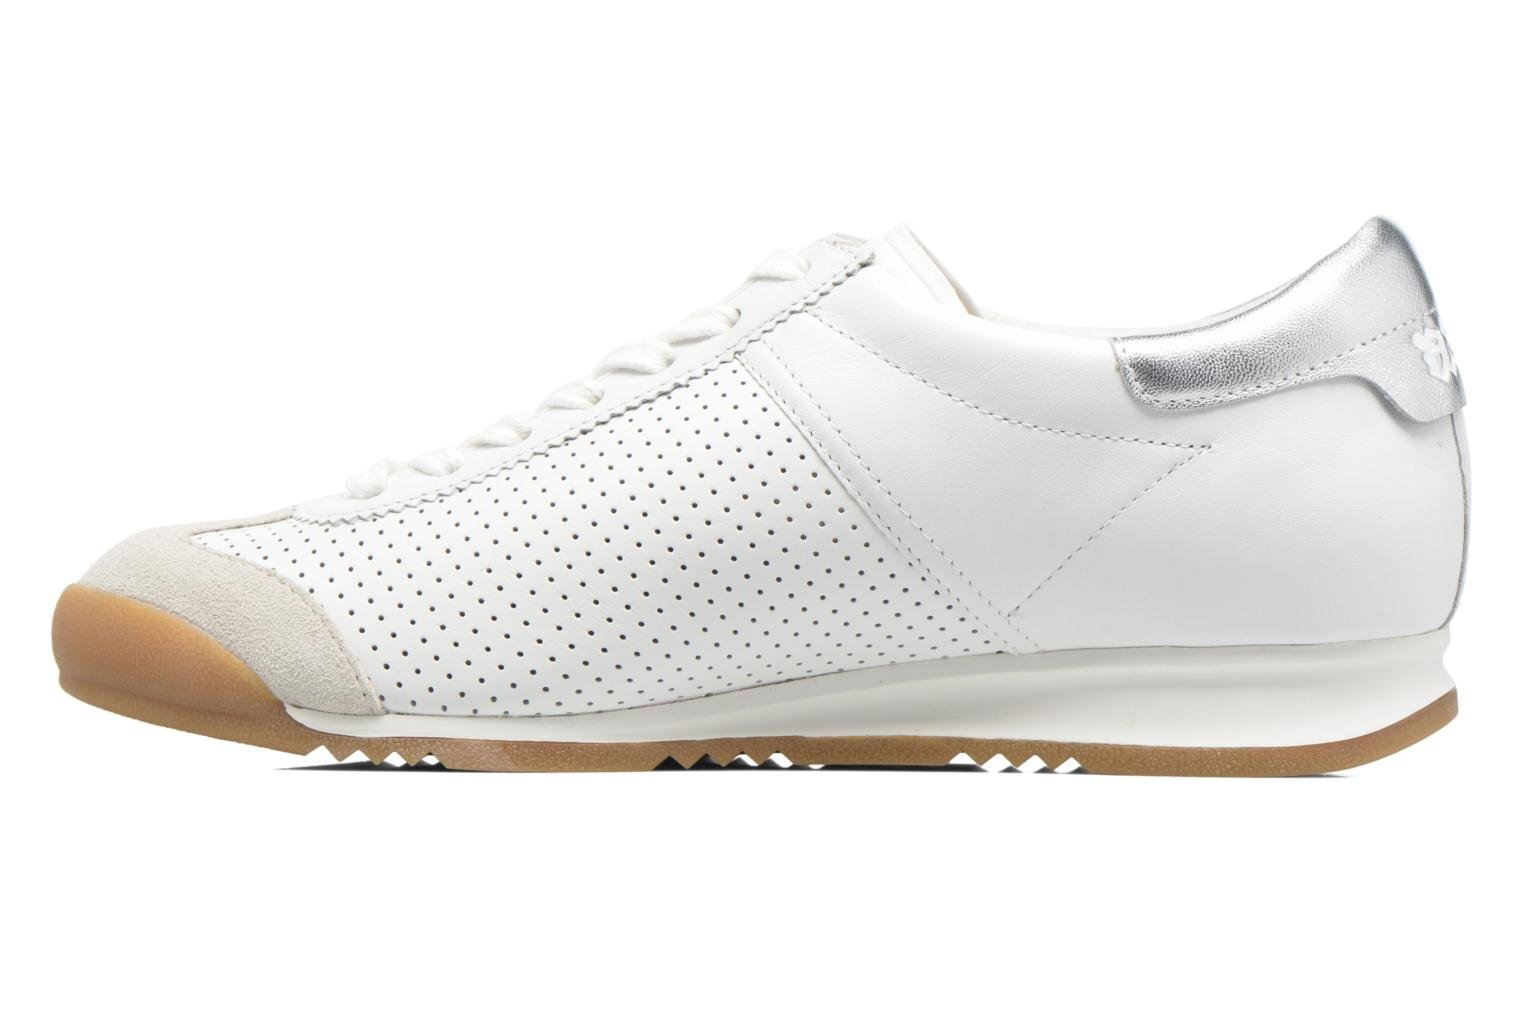 Soul Combo B Baby Soft Off White / Nappa Calf White